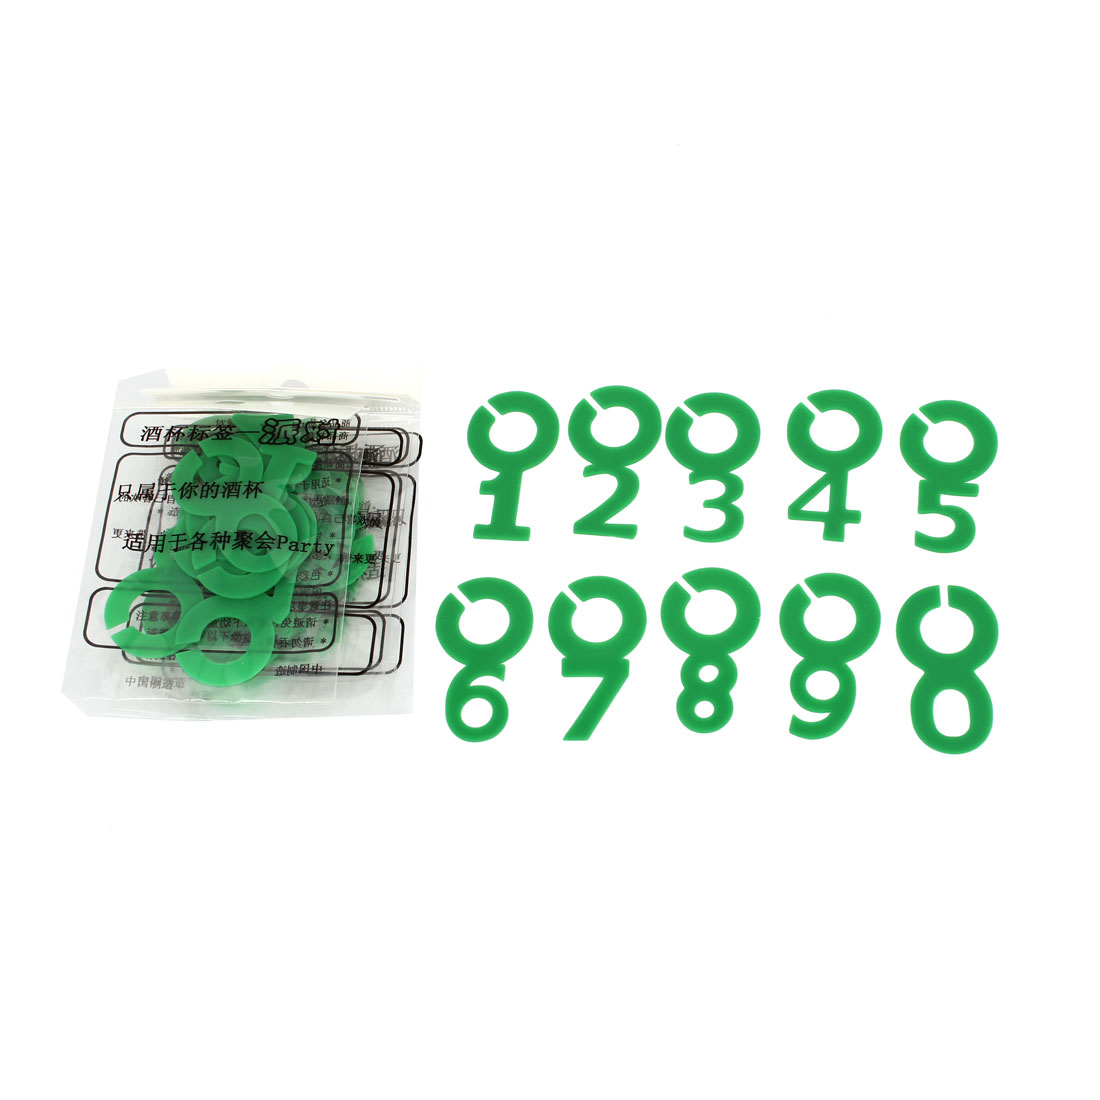 Green Arabic Number Shaped Identify Cup Wine Glasses Drink Markers 50pcs